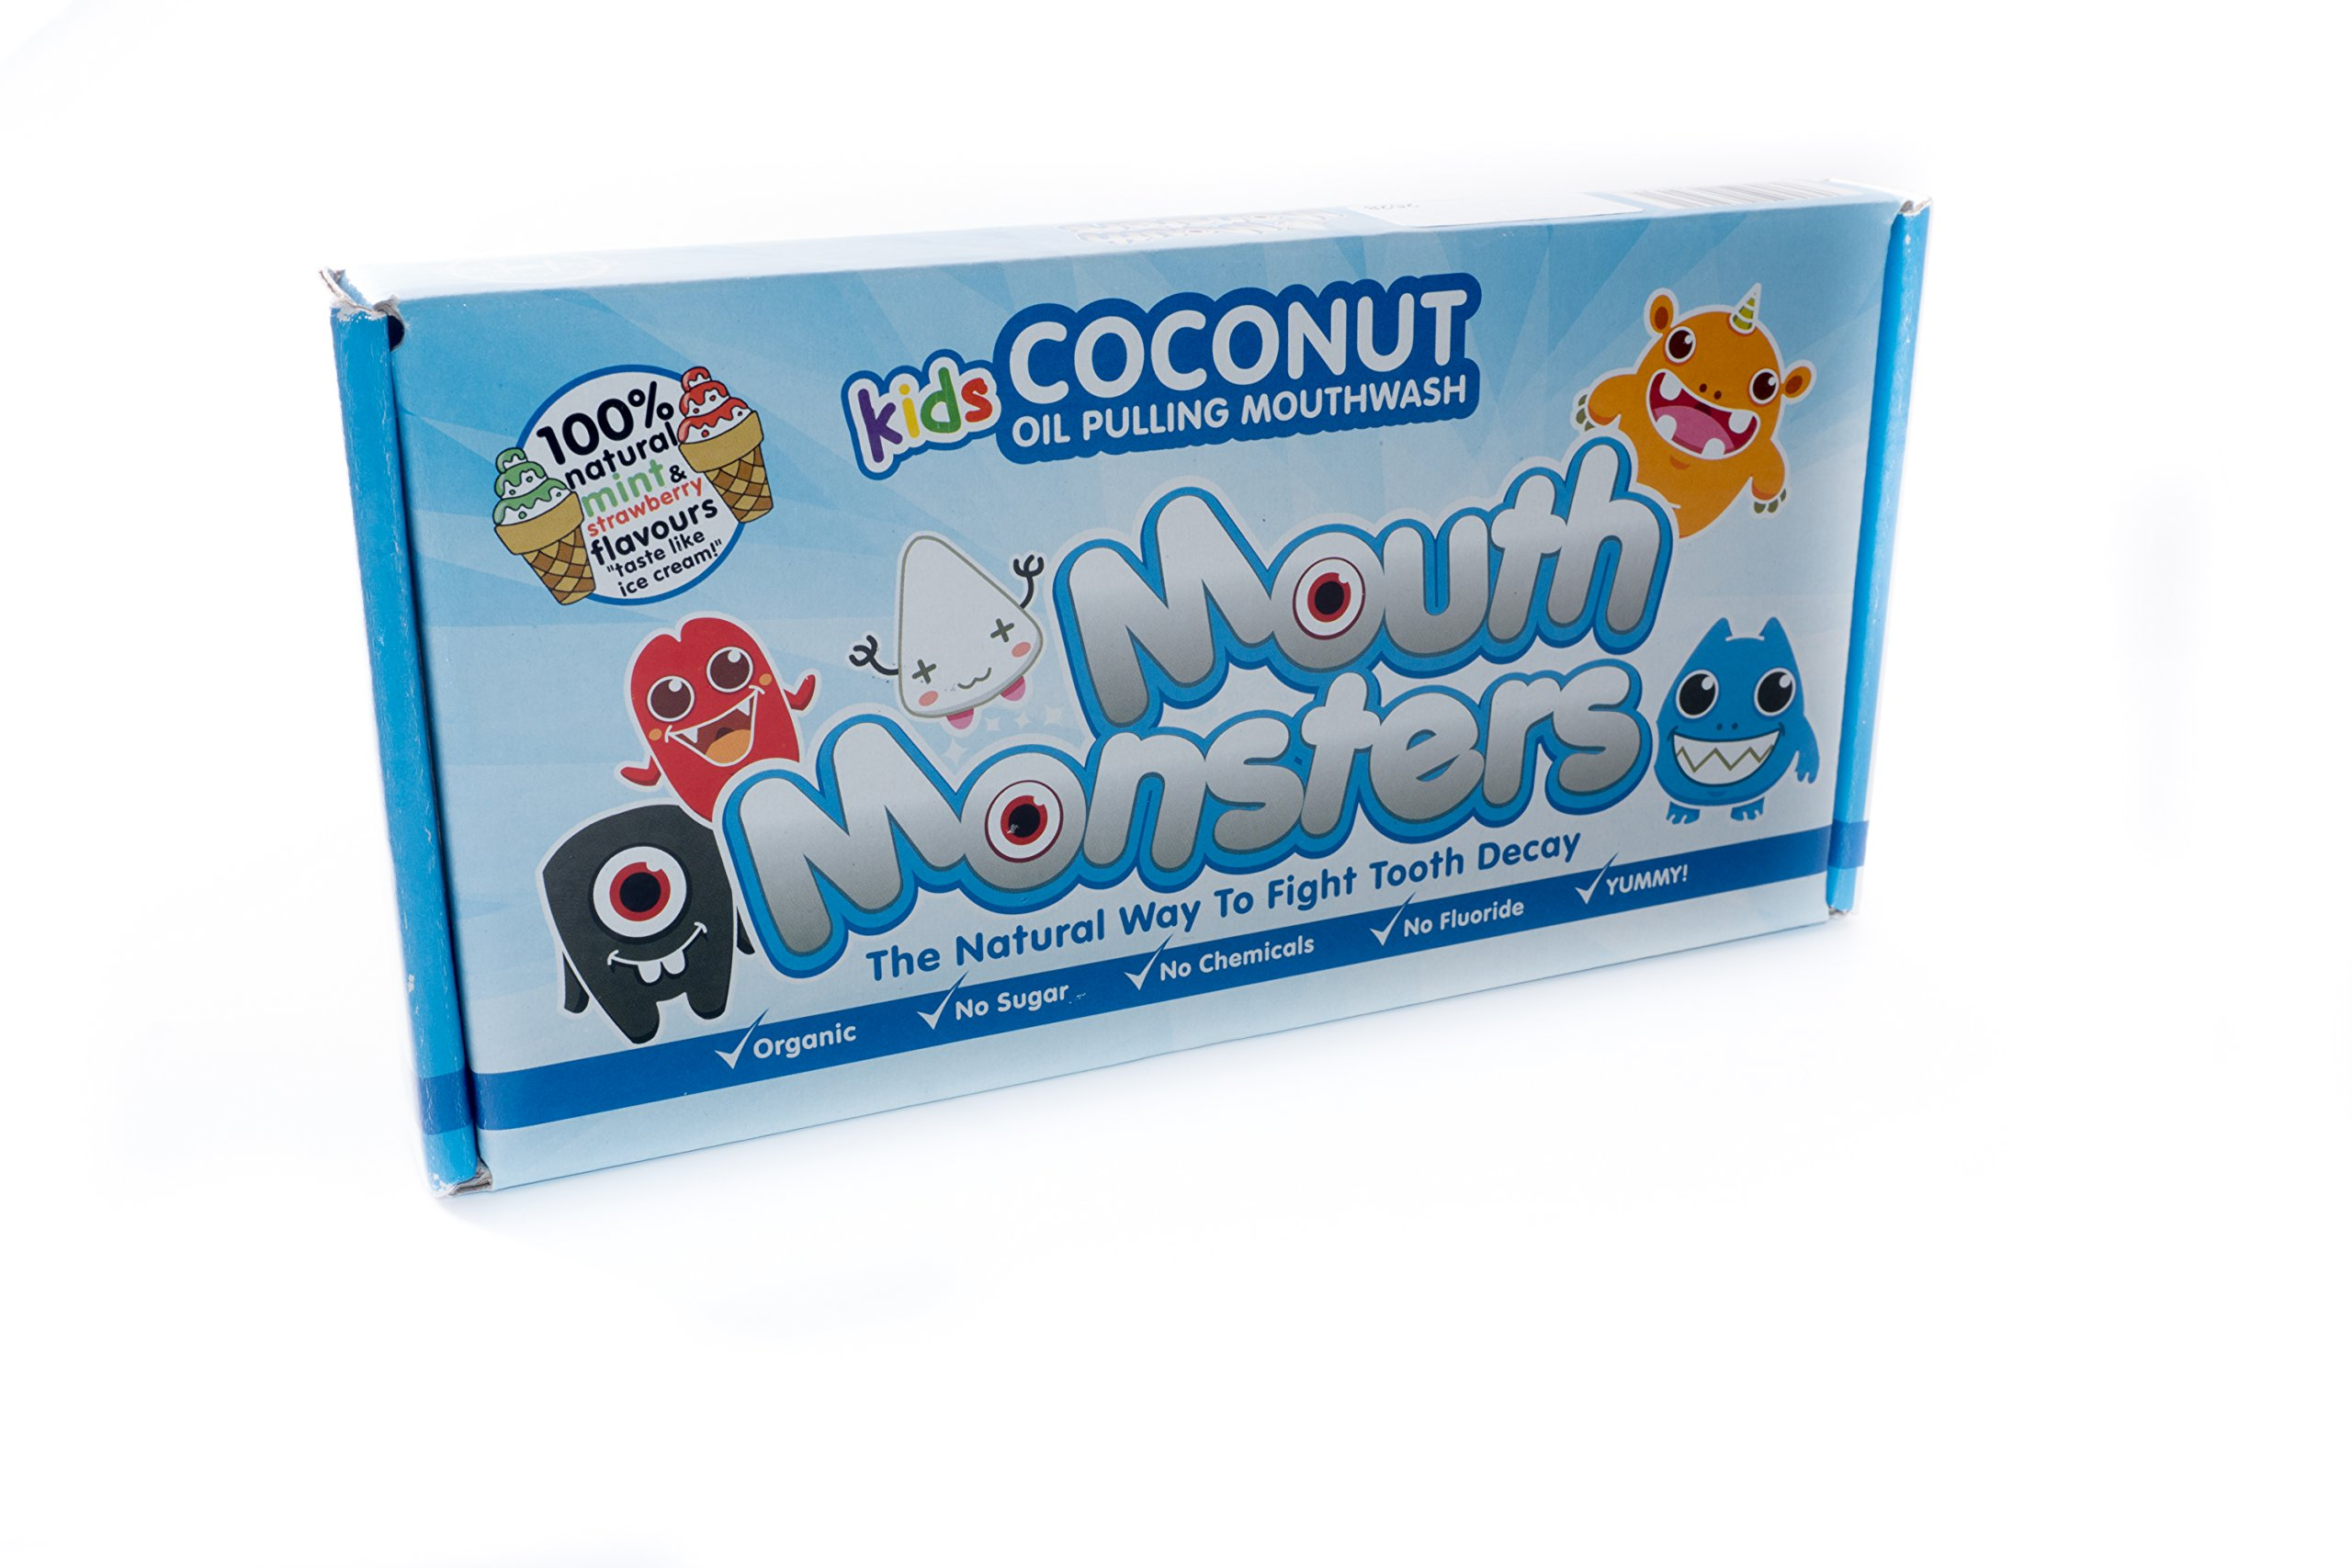 MouthMonsters Detoxifying Ayurvedic Coconut Oil Pulling Mouthwash For Kids Of All Ages – Mild Mint & Strawberry - Organic & 100% Natural.